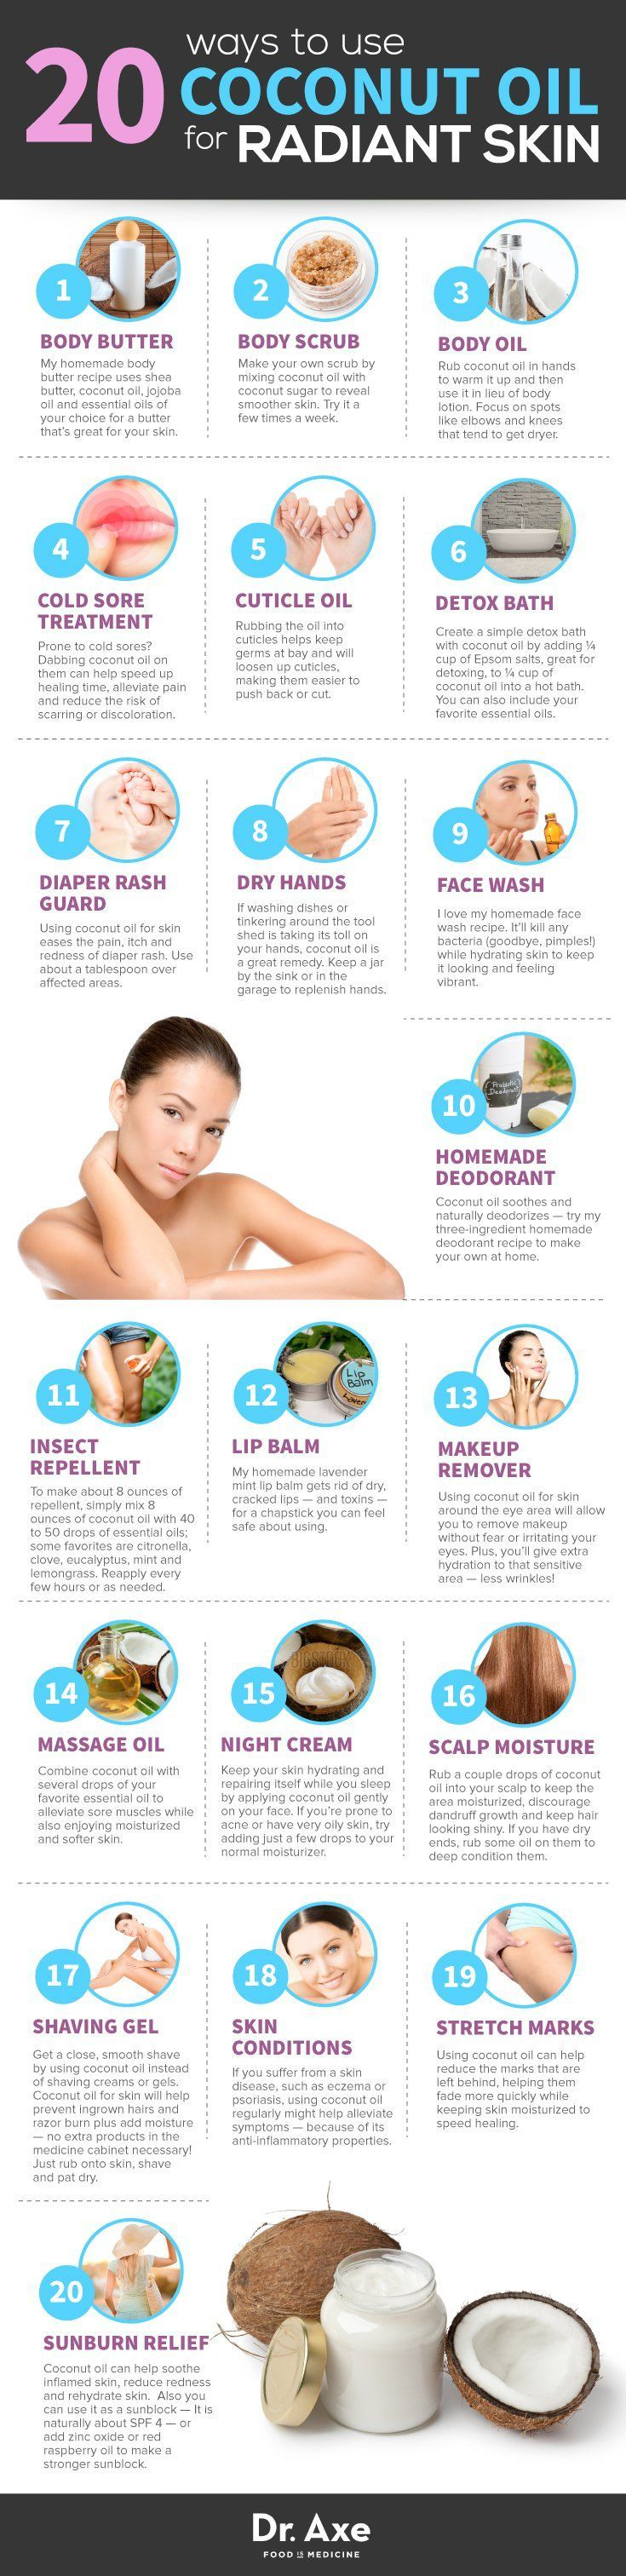 Using coconut oil for skin is an all-natural way to eliminate many of the toxic ingredients that are found on drugstore shelves, as well as a cost-effective way to care for your body.